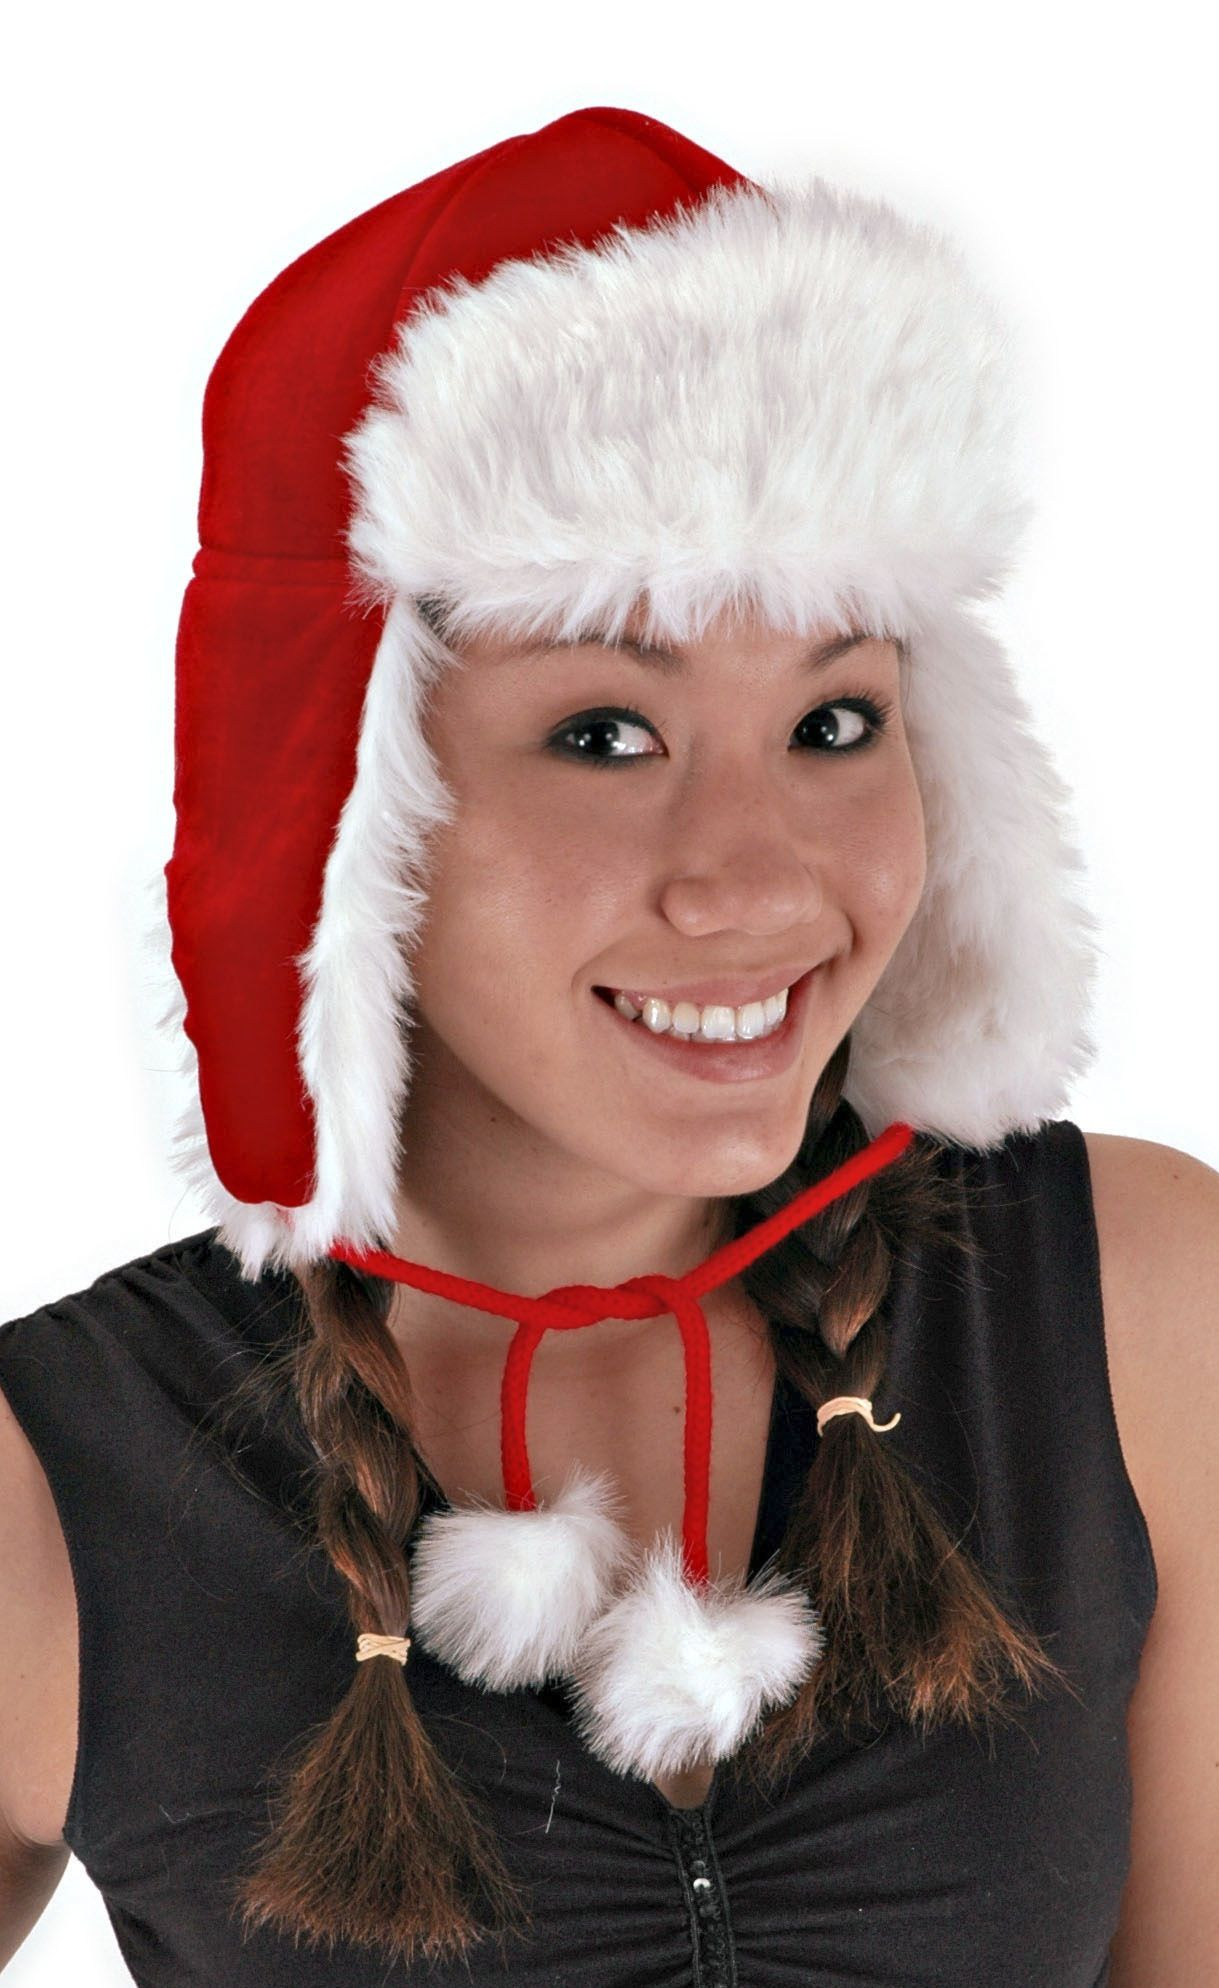 With this red Santa aviator hat, you'll get a festive look that's unique.